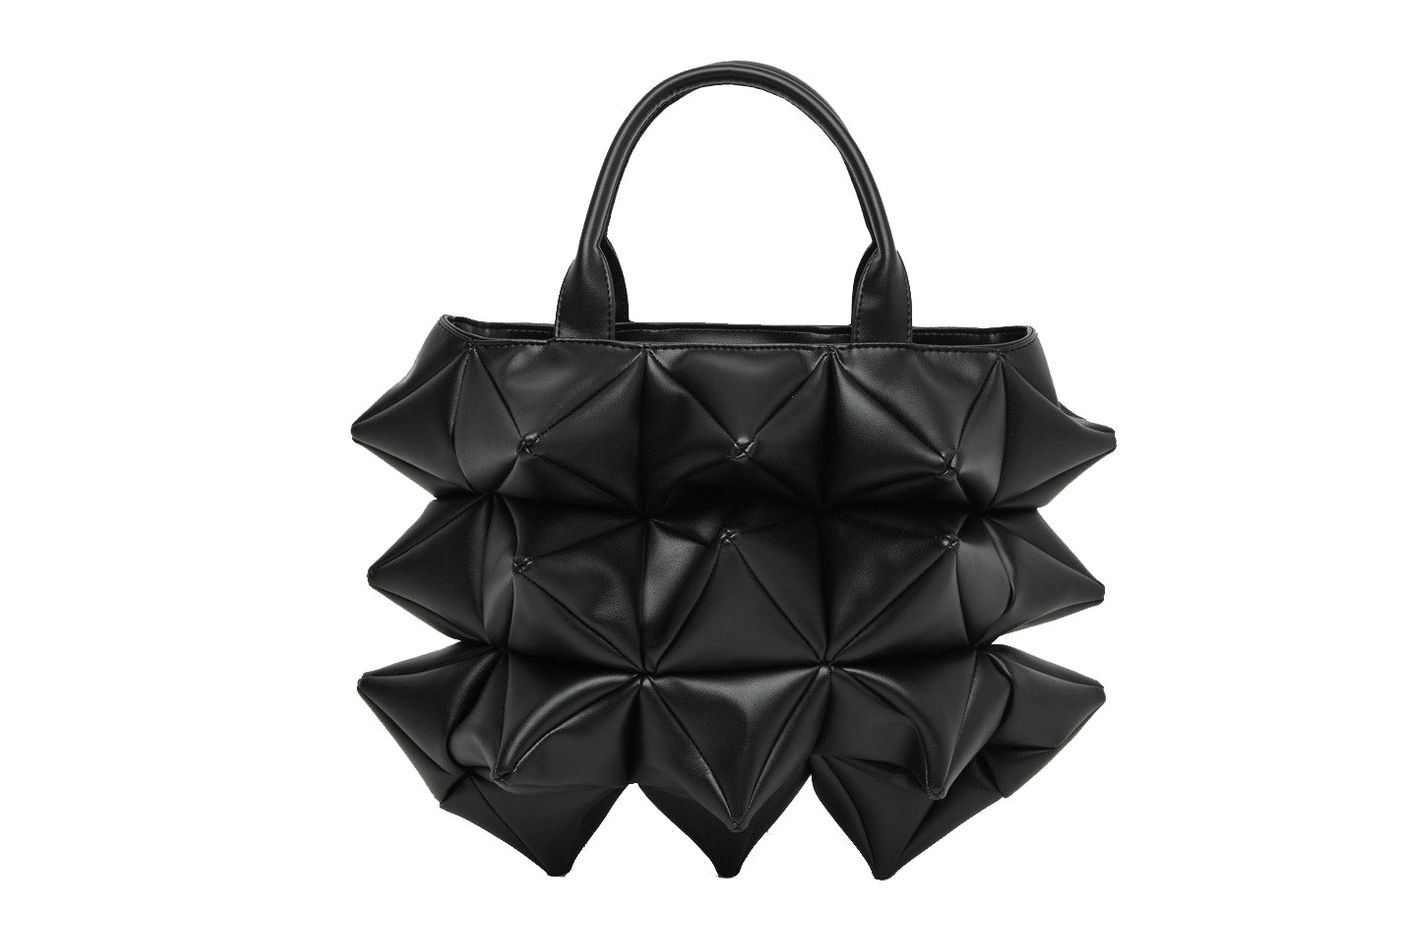 Junya Watanabe Spiked Top-Handle Bag